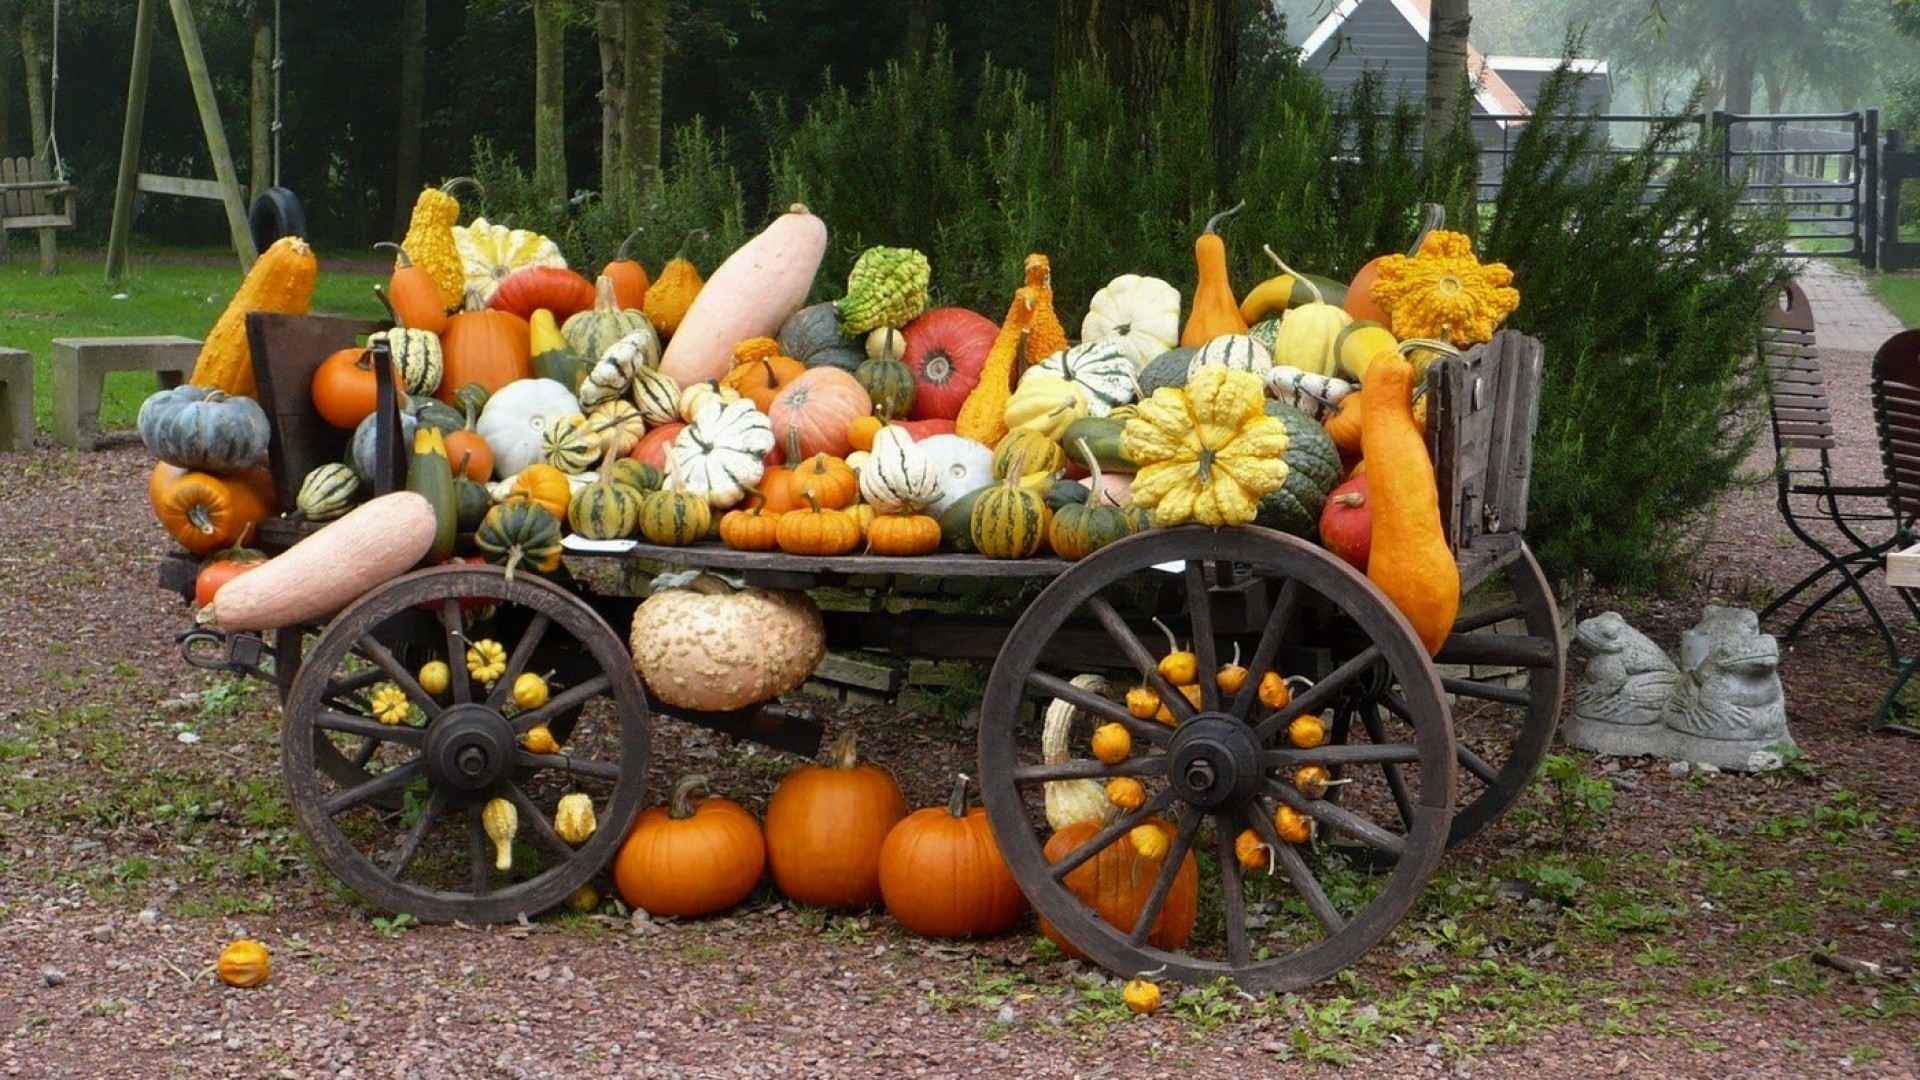 Fall Wallpaper Backgrounds With Pumpkins (55+ images)